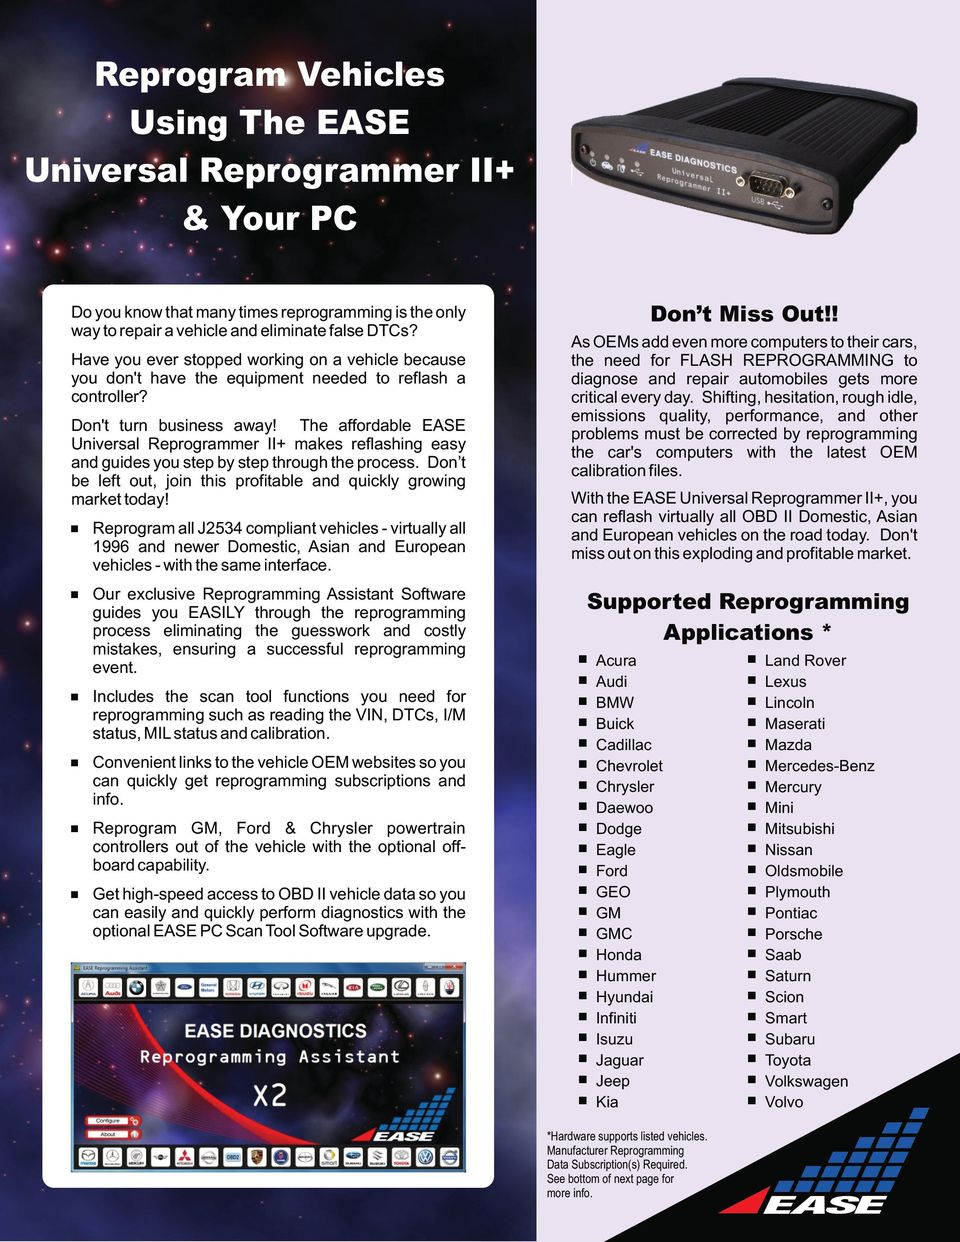 The affordable EASE Universal Reprogrammer II+ makes reflashing easy and guides you step by step through the process. Don t be left out, join this profitable and quickly growing market today!